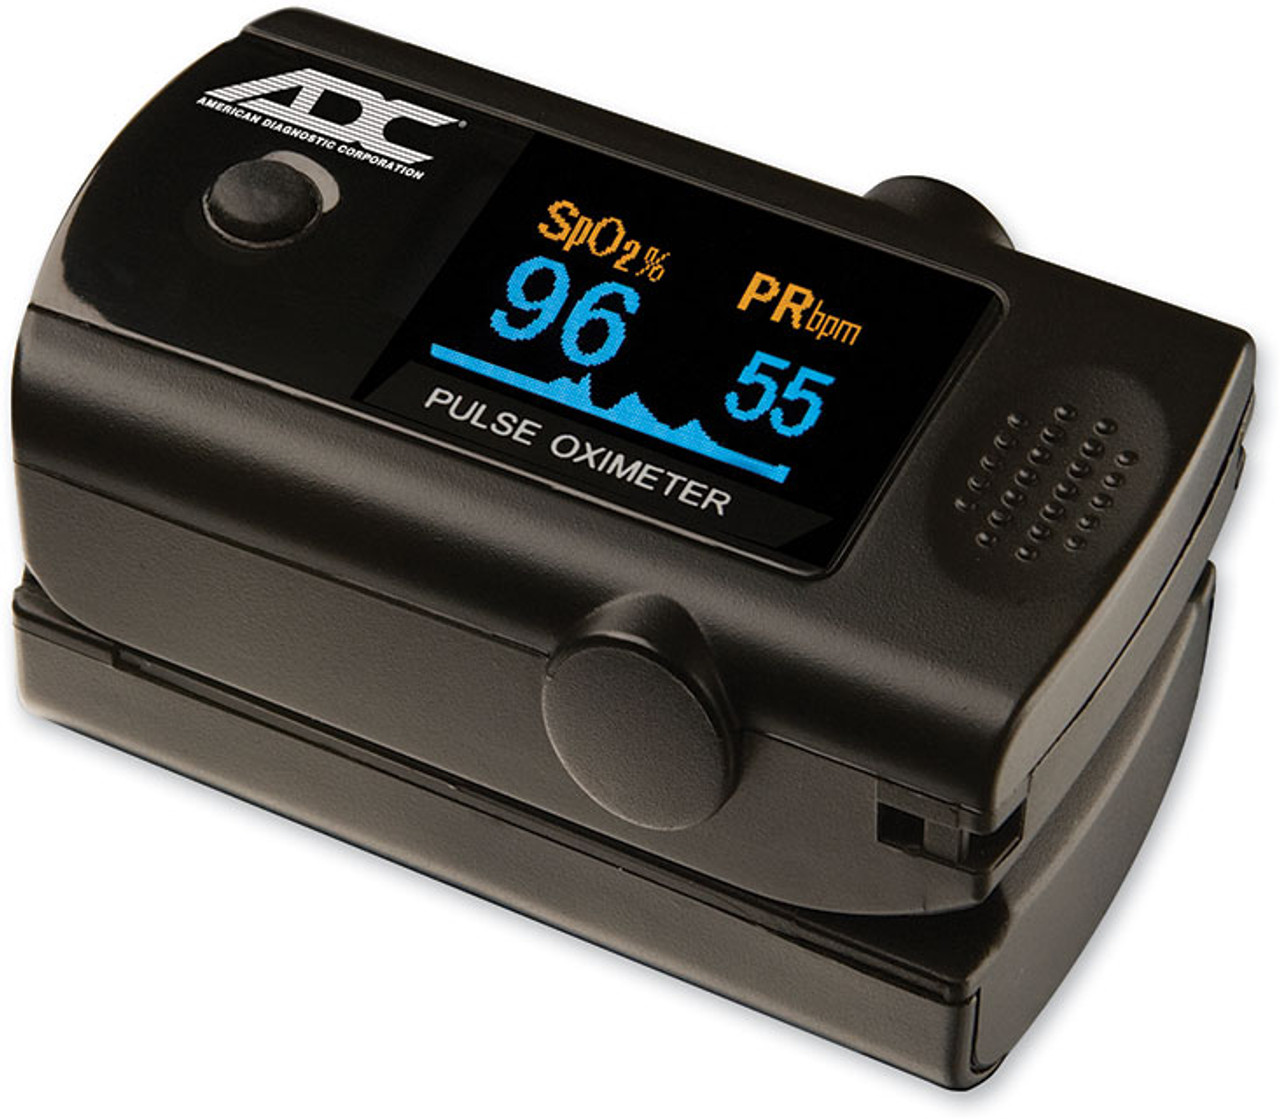 ADC 2100 DIAGNOSTIX Digital Fingertip Pulse Oximeter